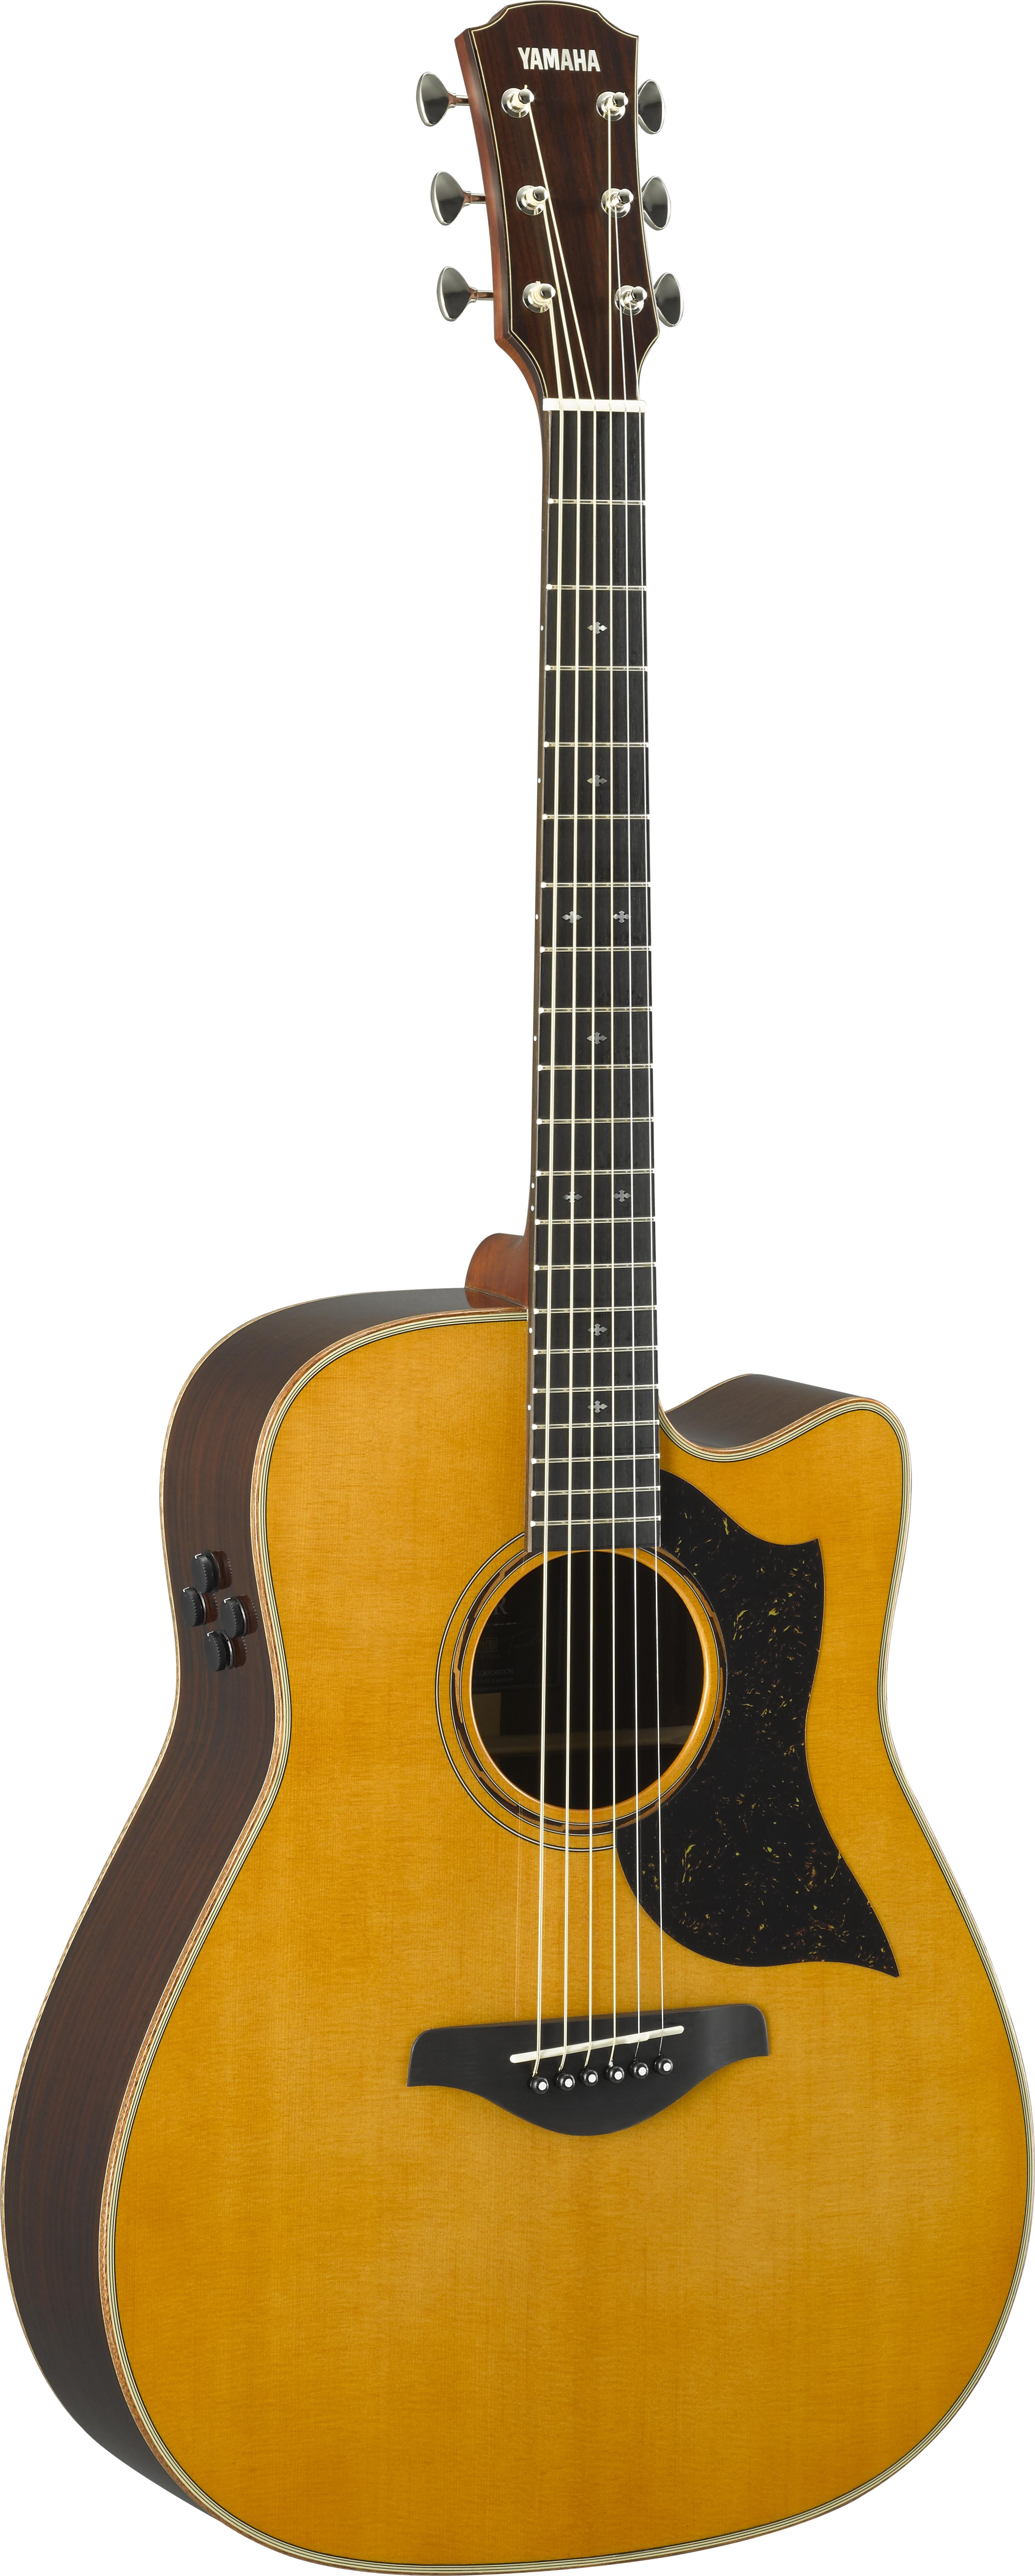 Yamaha a series acoustic guitars with srt pickups and a r for Yamaha series a